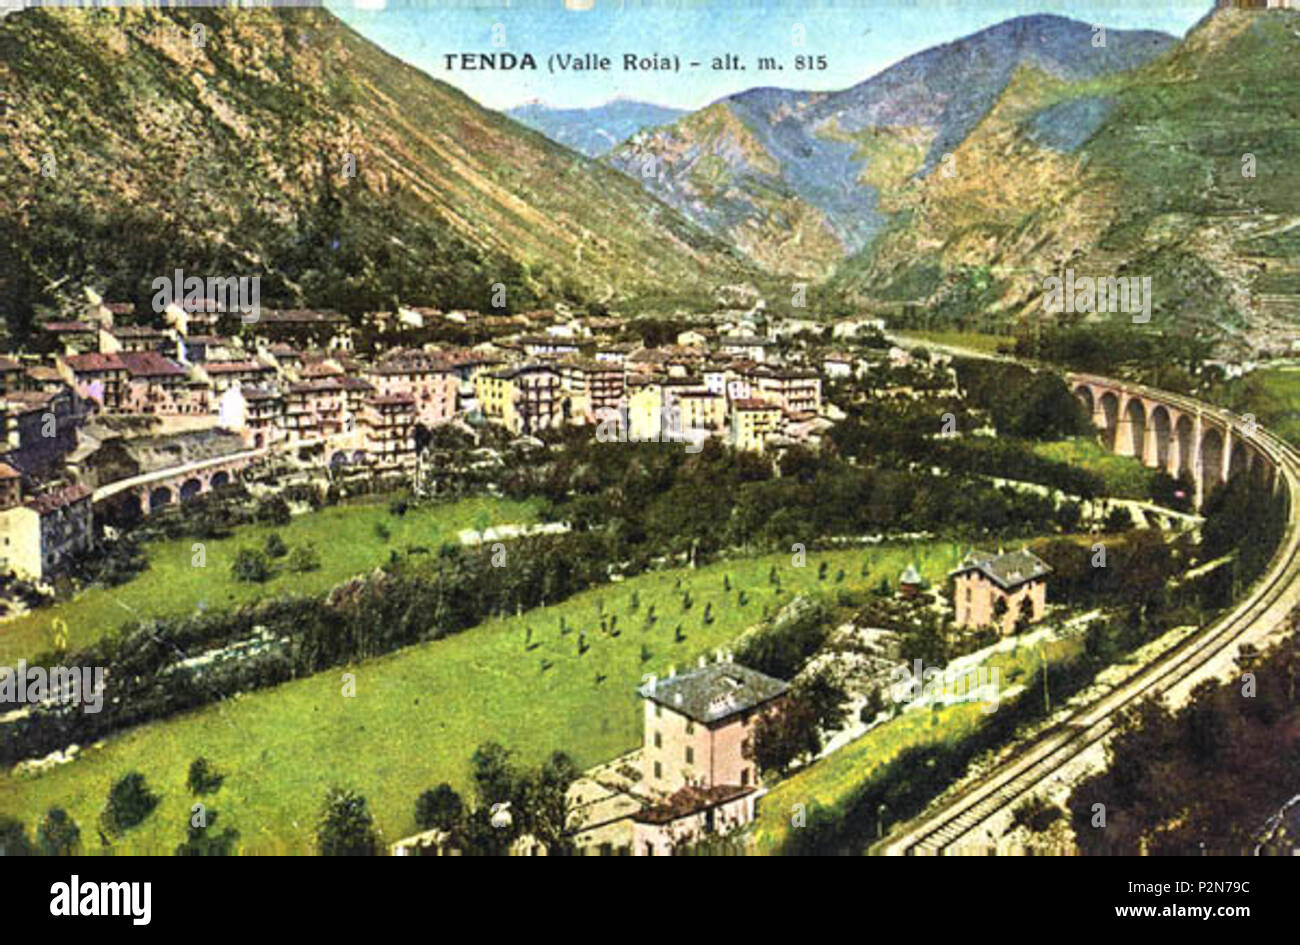 Inglese Vista Della Tenda Italia Ora Tende Francia Nel 1938 1938 Unknown 68 Panorama Tenda 1938 Foto Stock Alamy